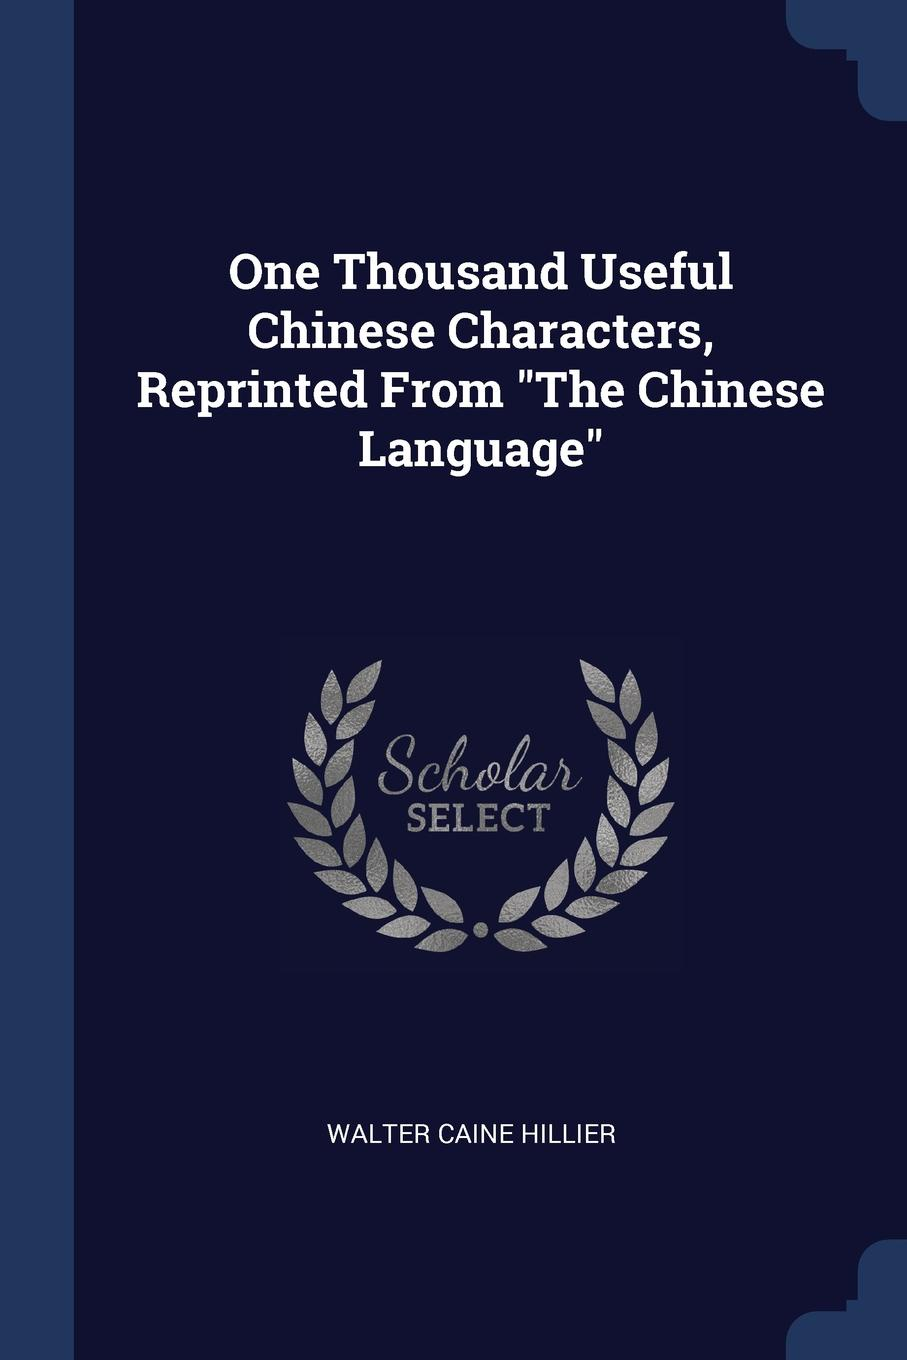 One Thousand Useful Chinese Characters, Reprinted From `The Chinese Language`. Walter Caine Hillier